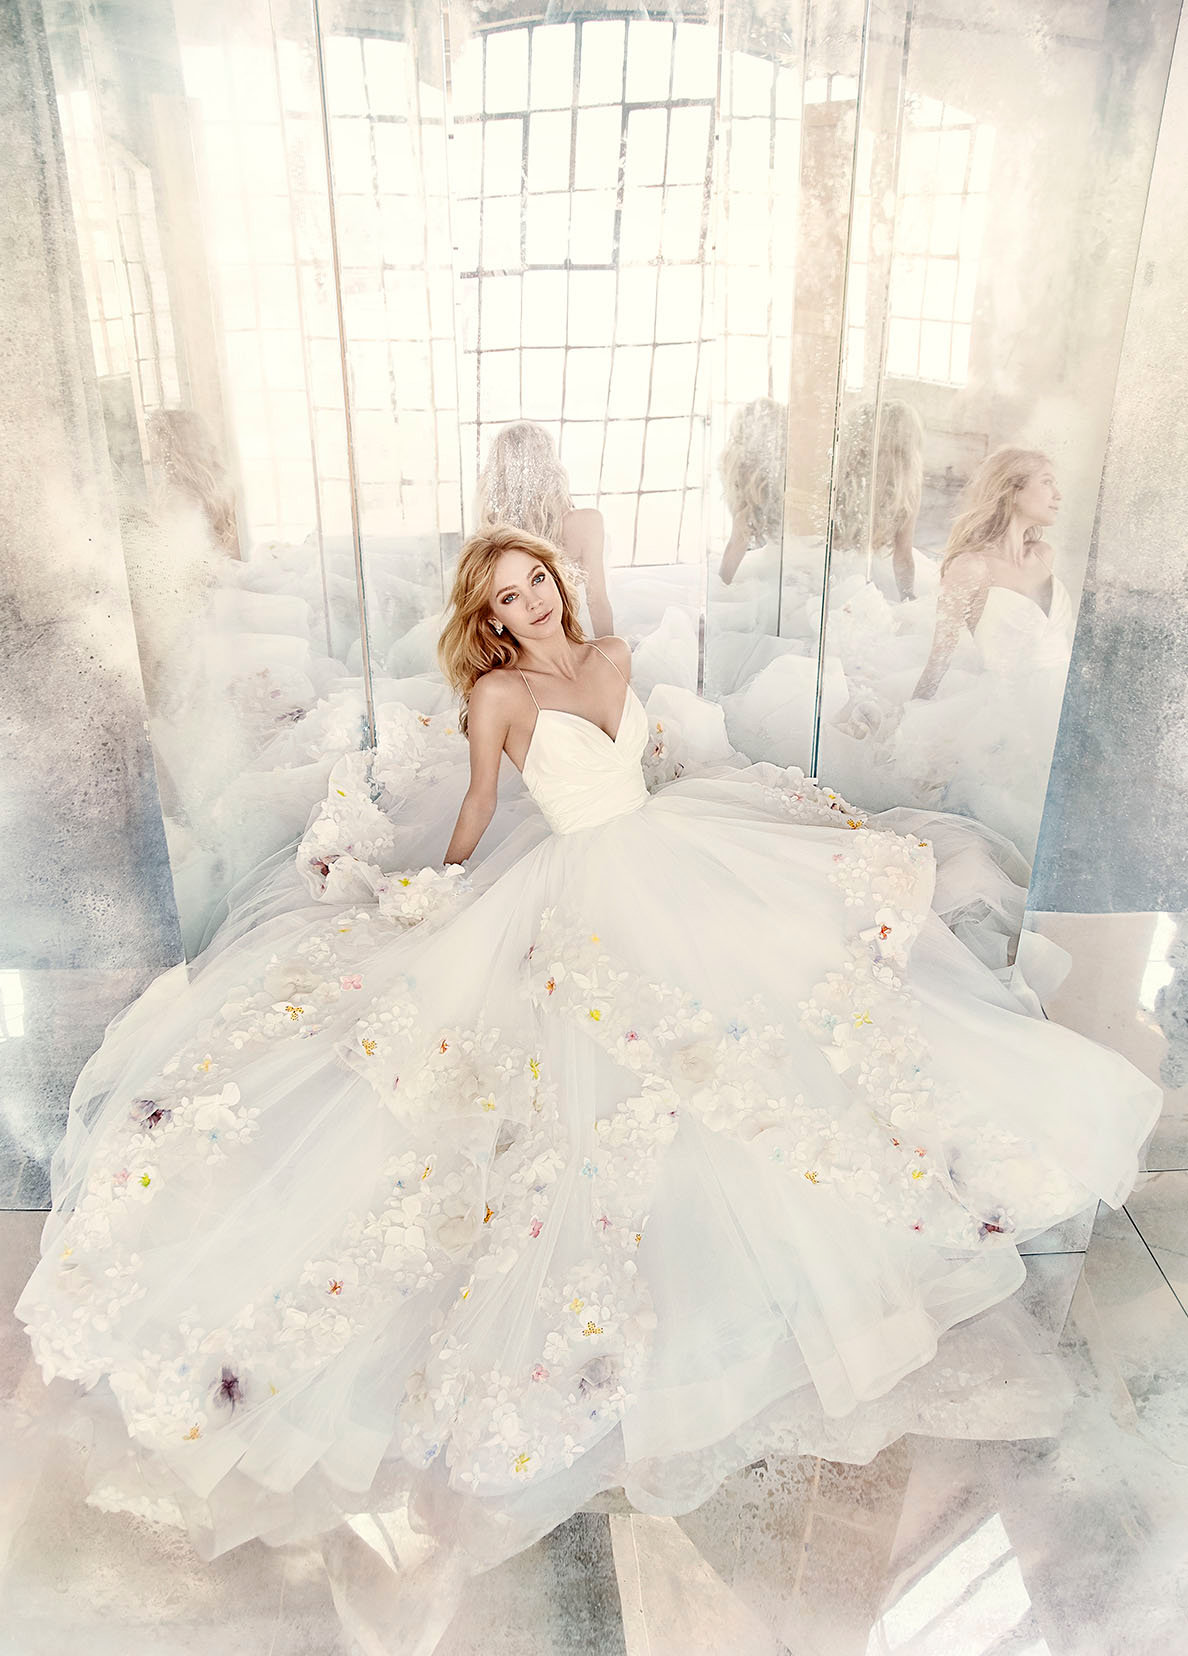 Bridal gowns and wedding dresses by jlm couture style 6601 style 6601 paige ombrellifo Gallery